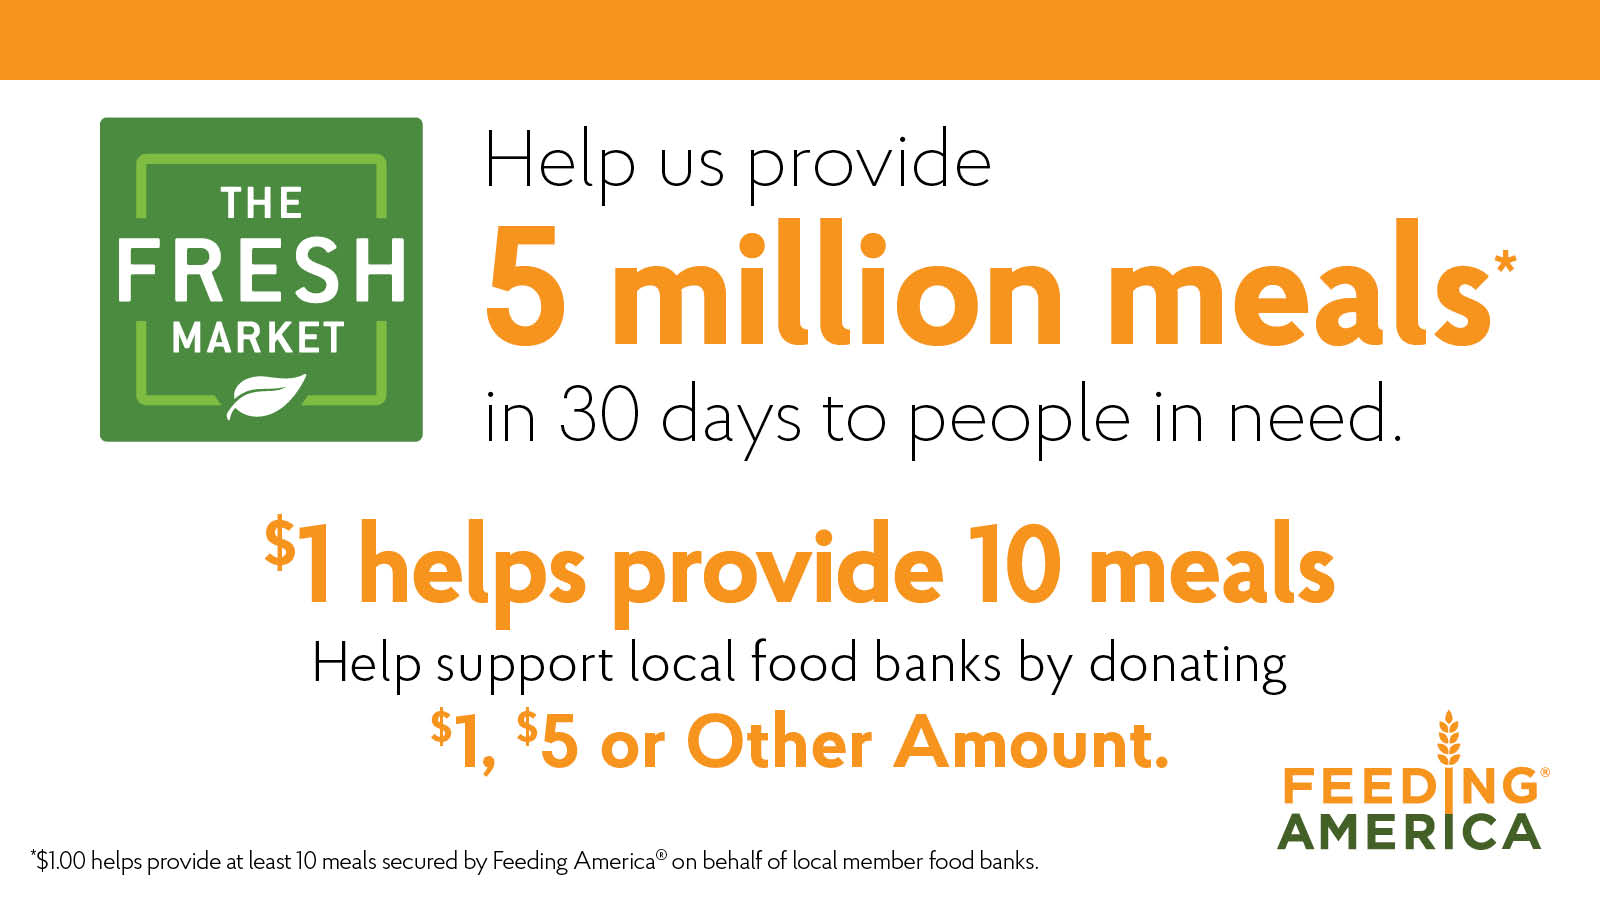 Help us provide 5 million meals